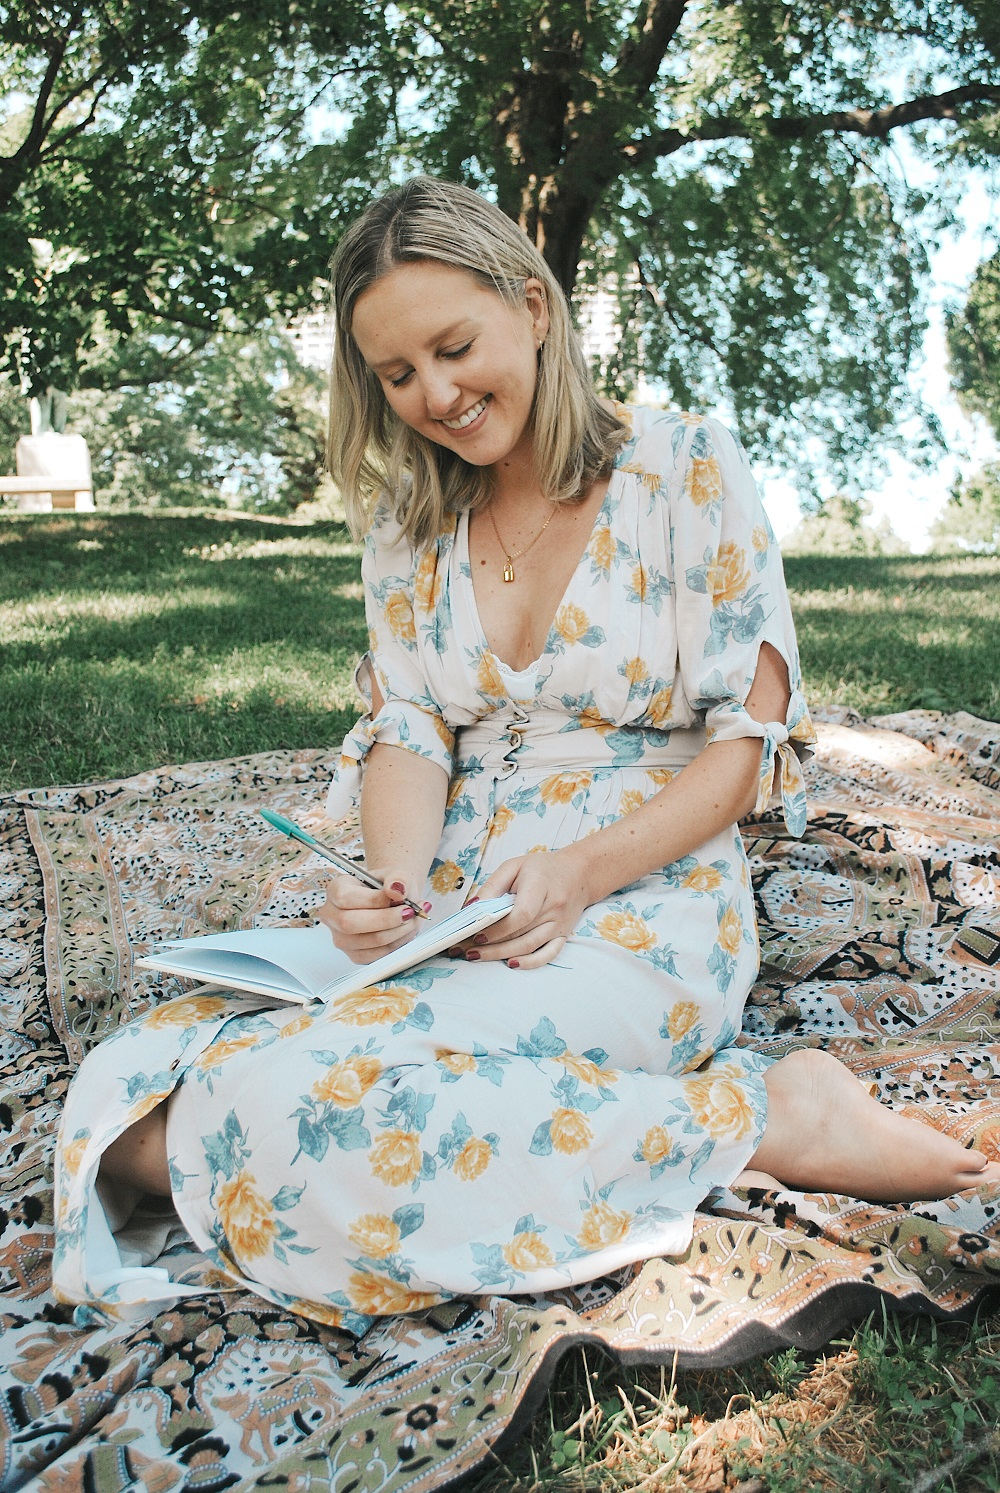 Young woman journaling in a park